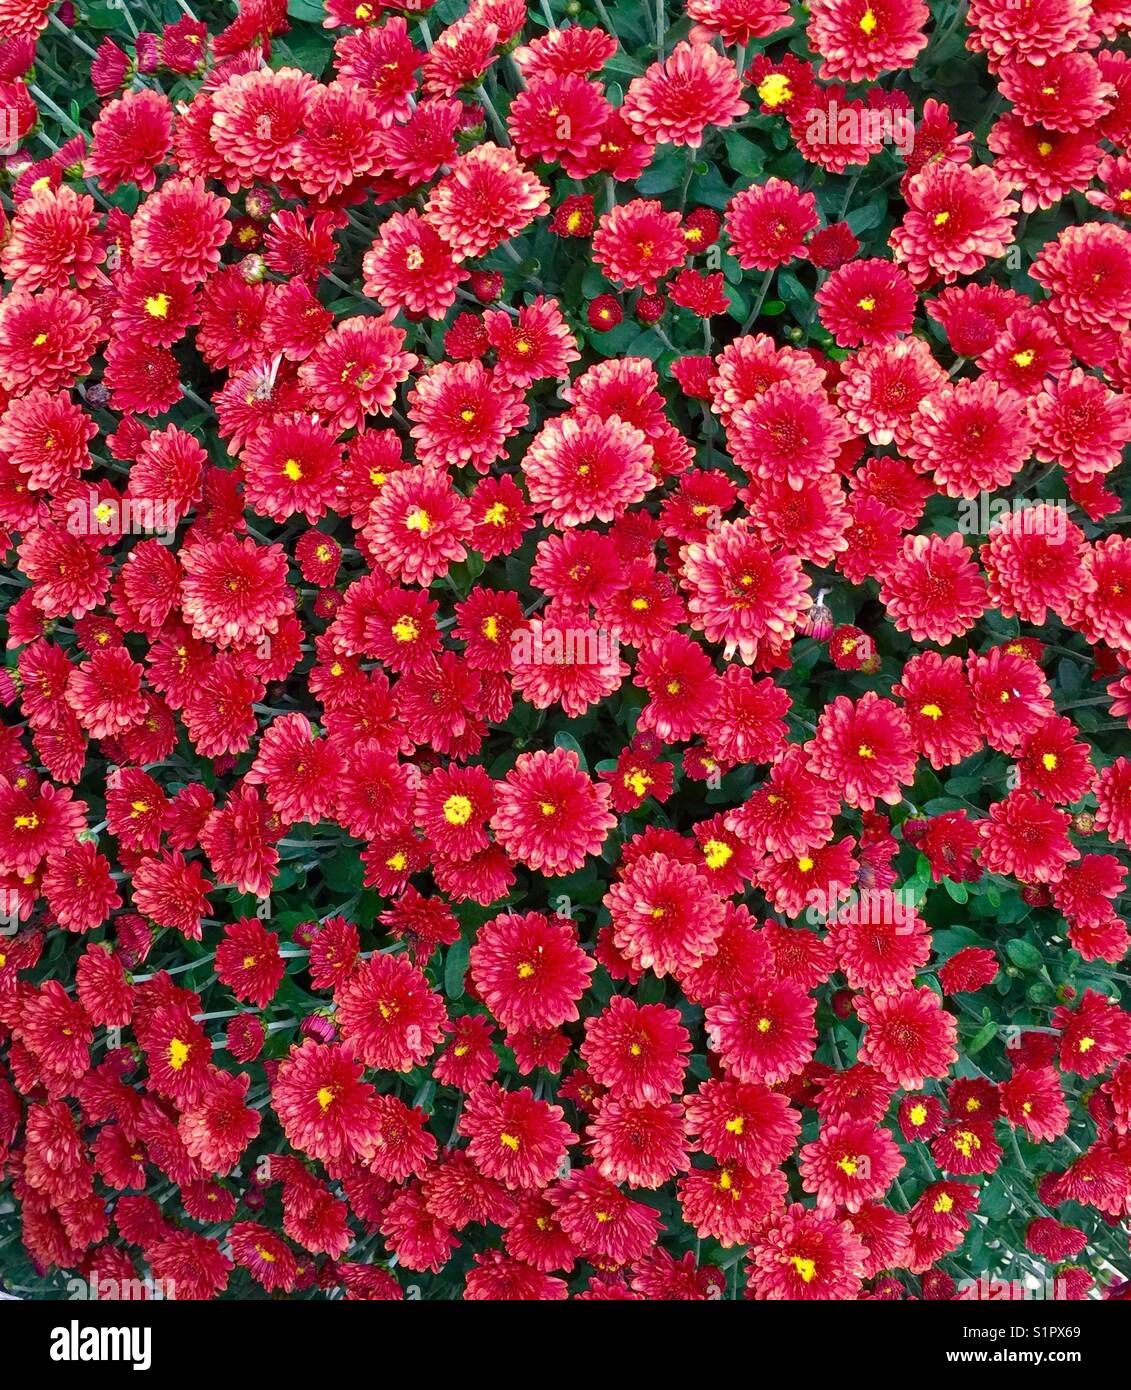 Magnificent Coral Pink Mums - Stock Image